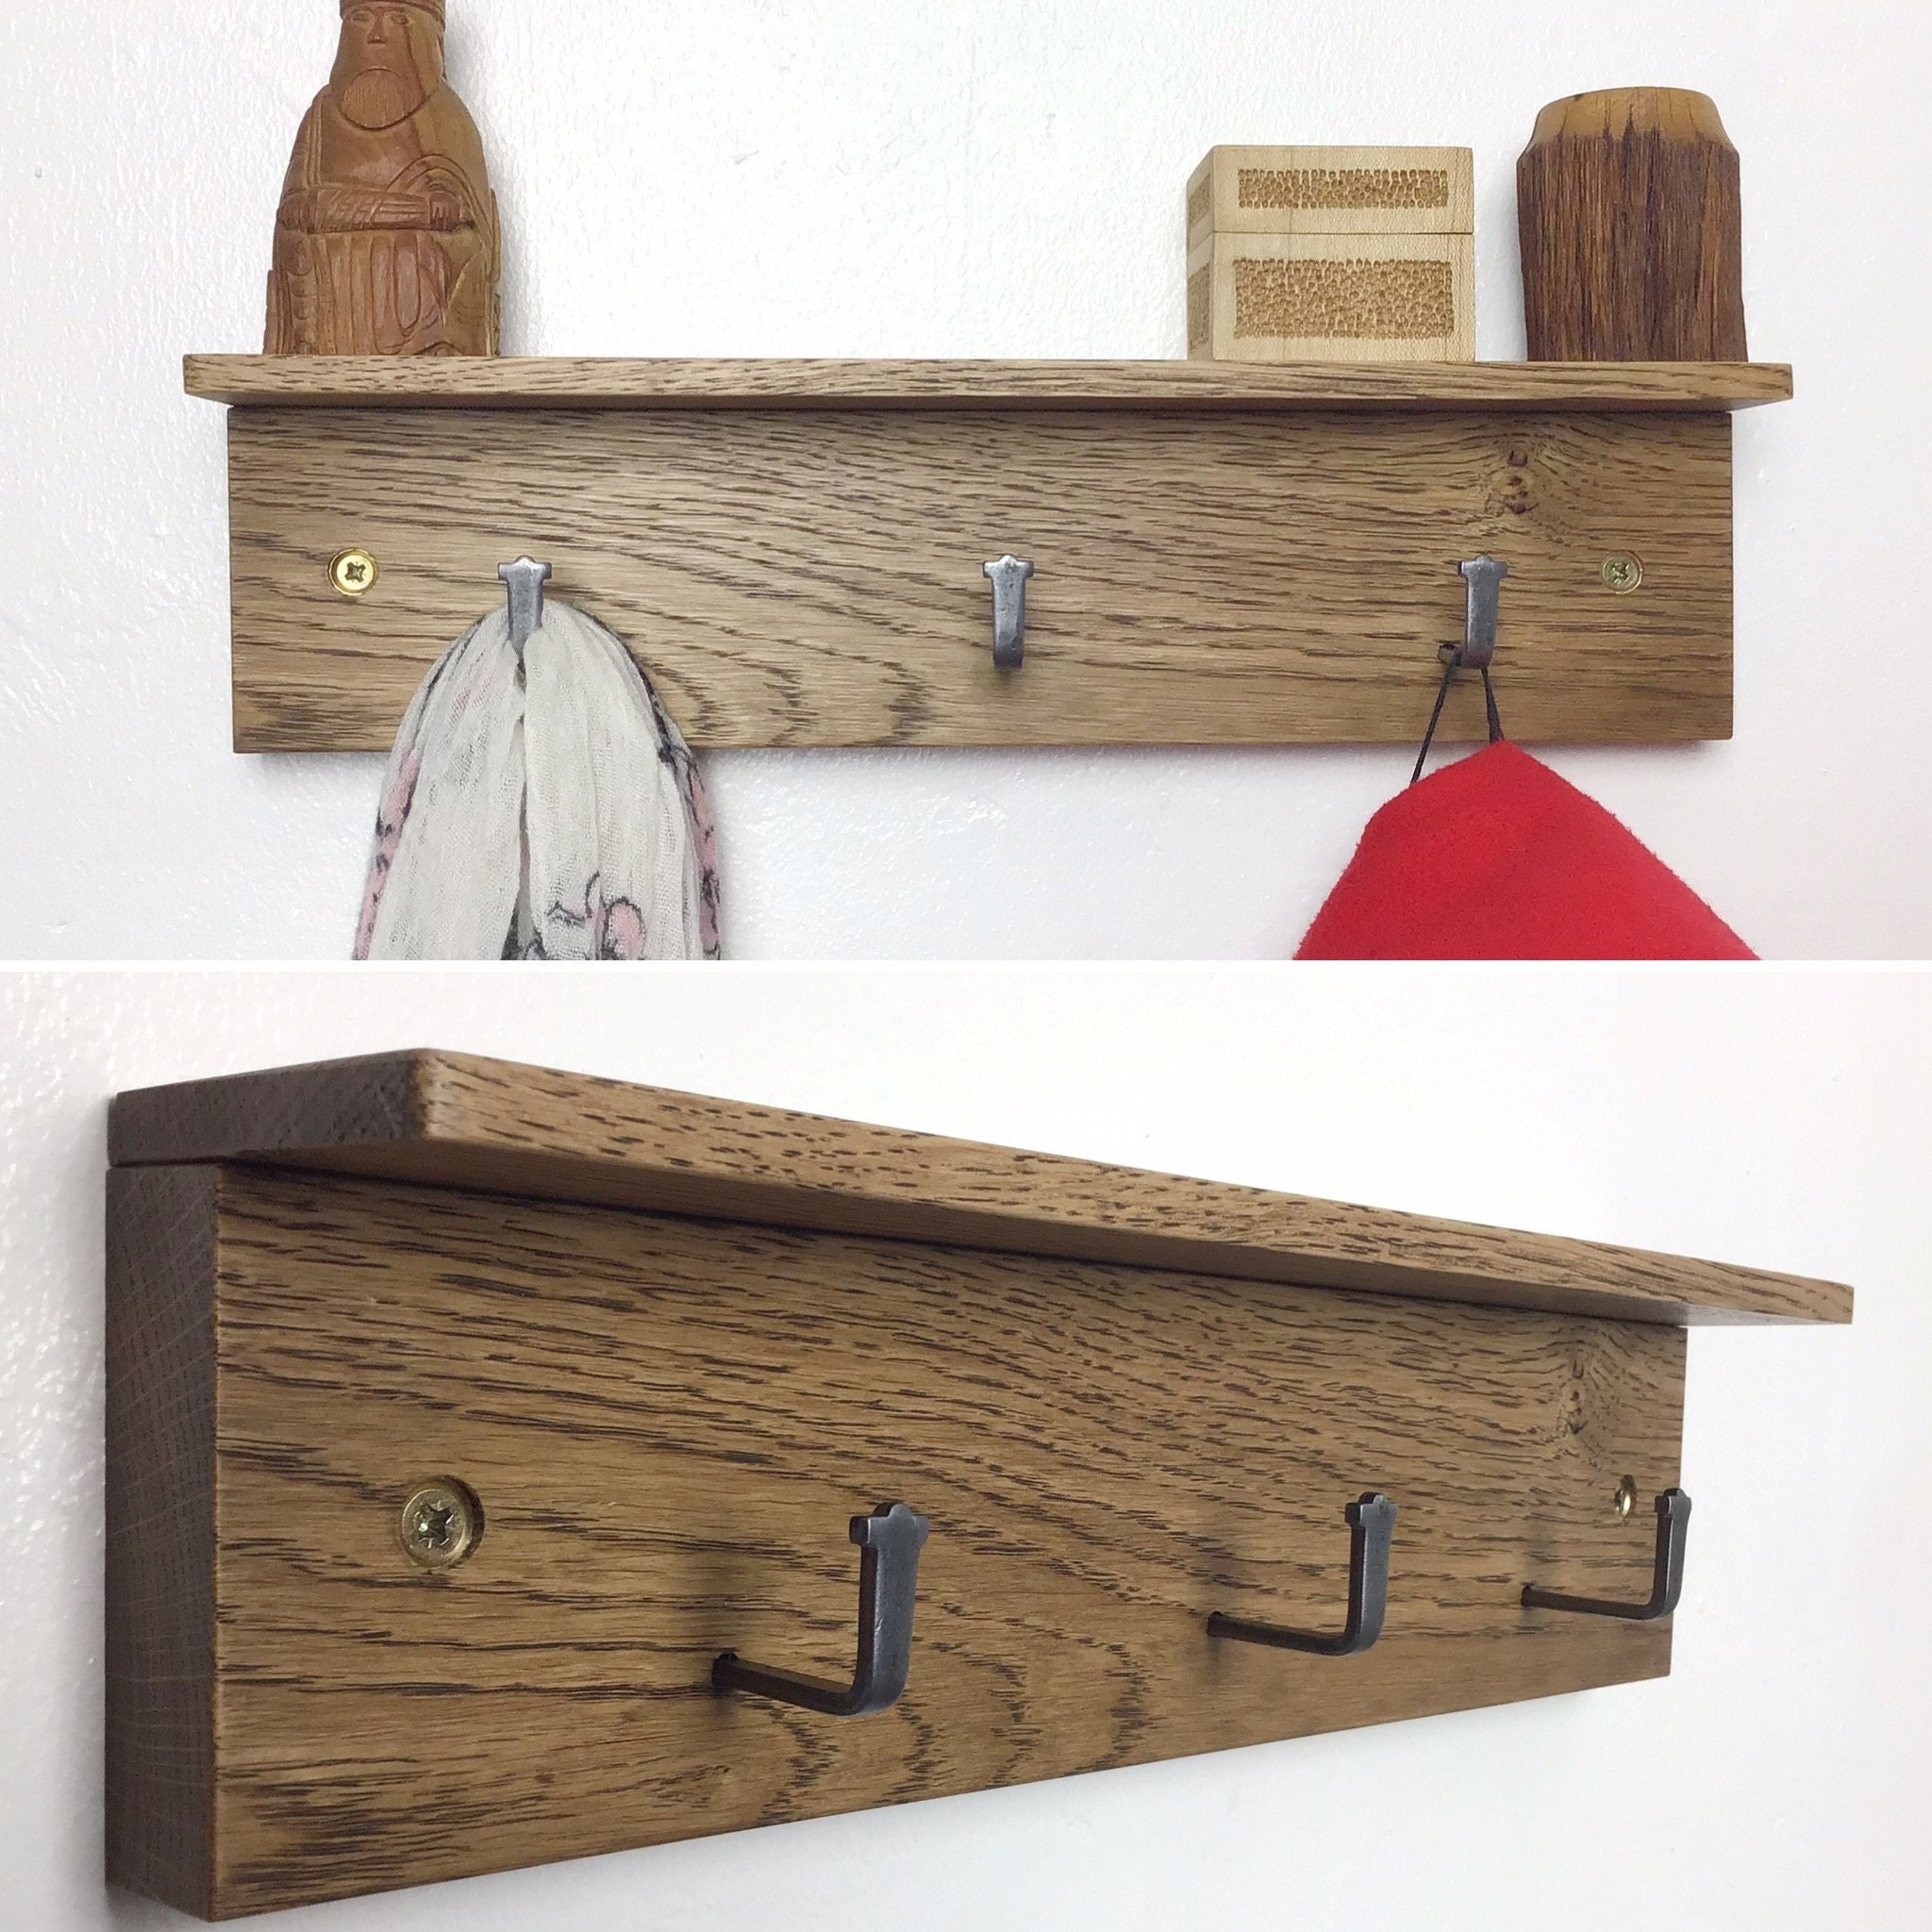 Dark Oak wood Coat Rack 3 hooks 33cm wide made in UK by gorlech